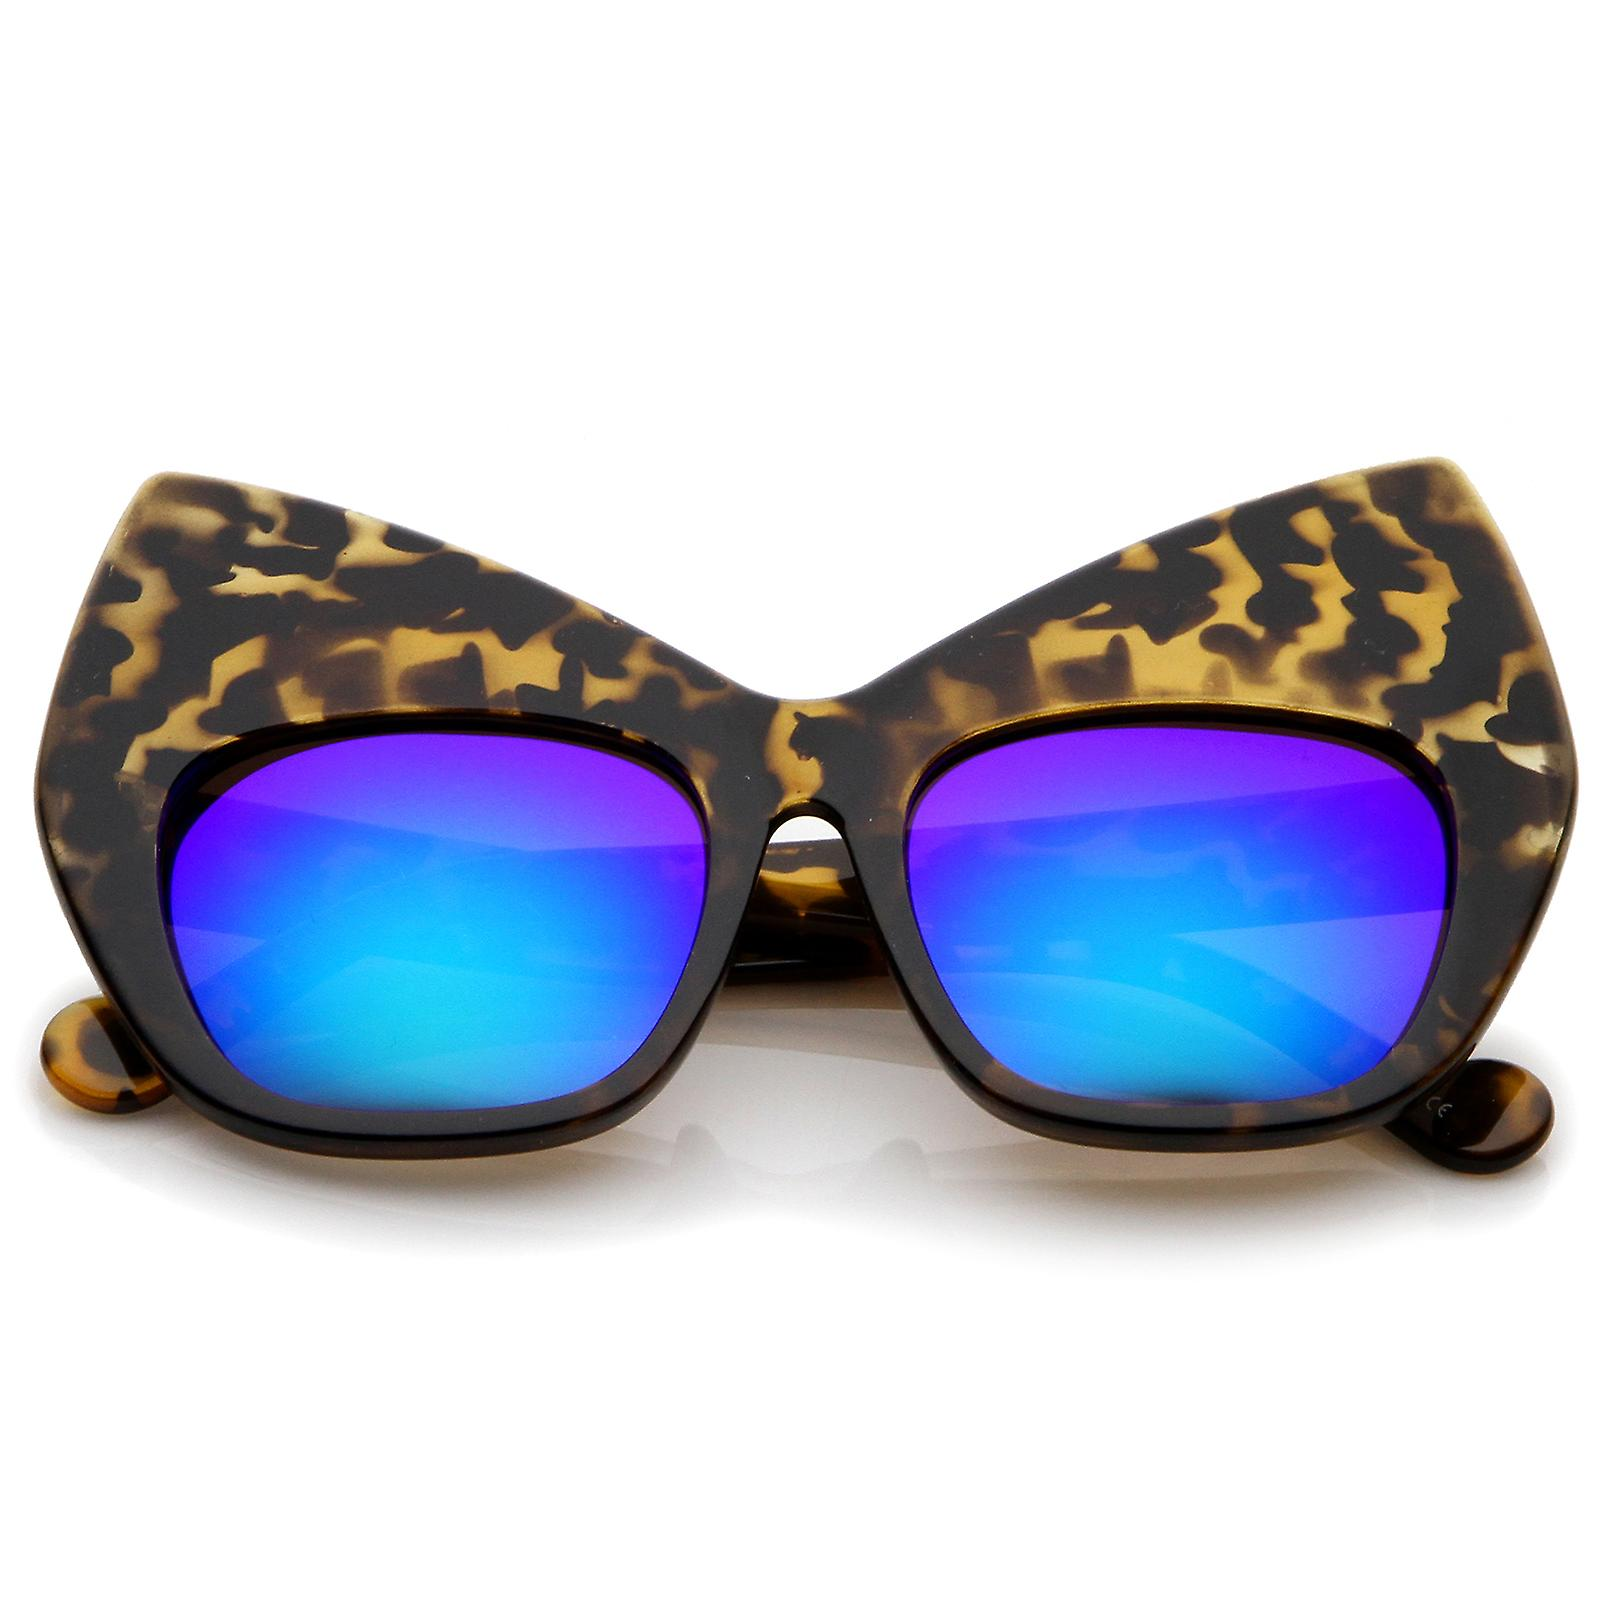 b5ffacd7d332 Chunky Frame Colored Mirror Square Lens Oversized Cat Eye Sunglasses 49mm